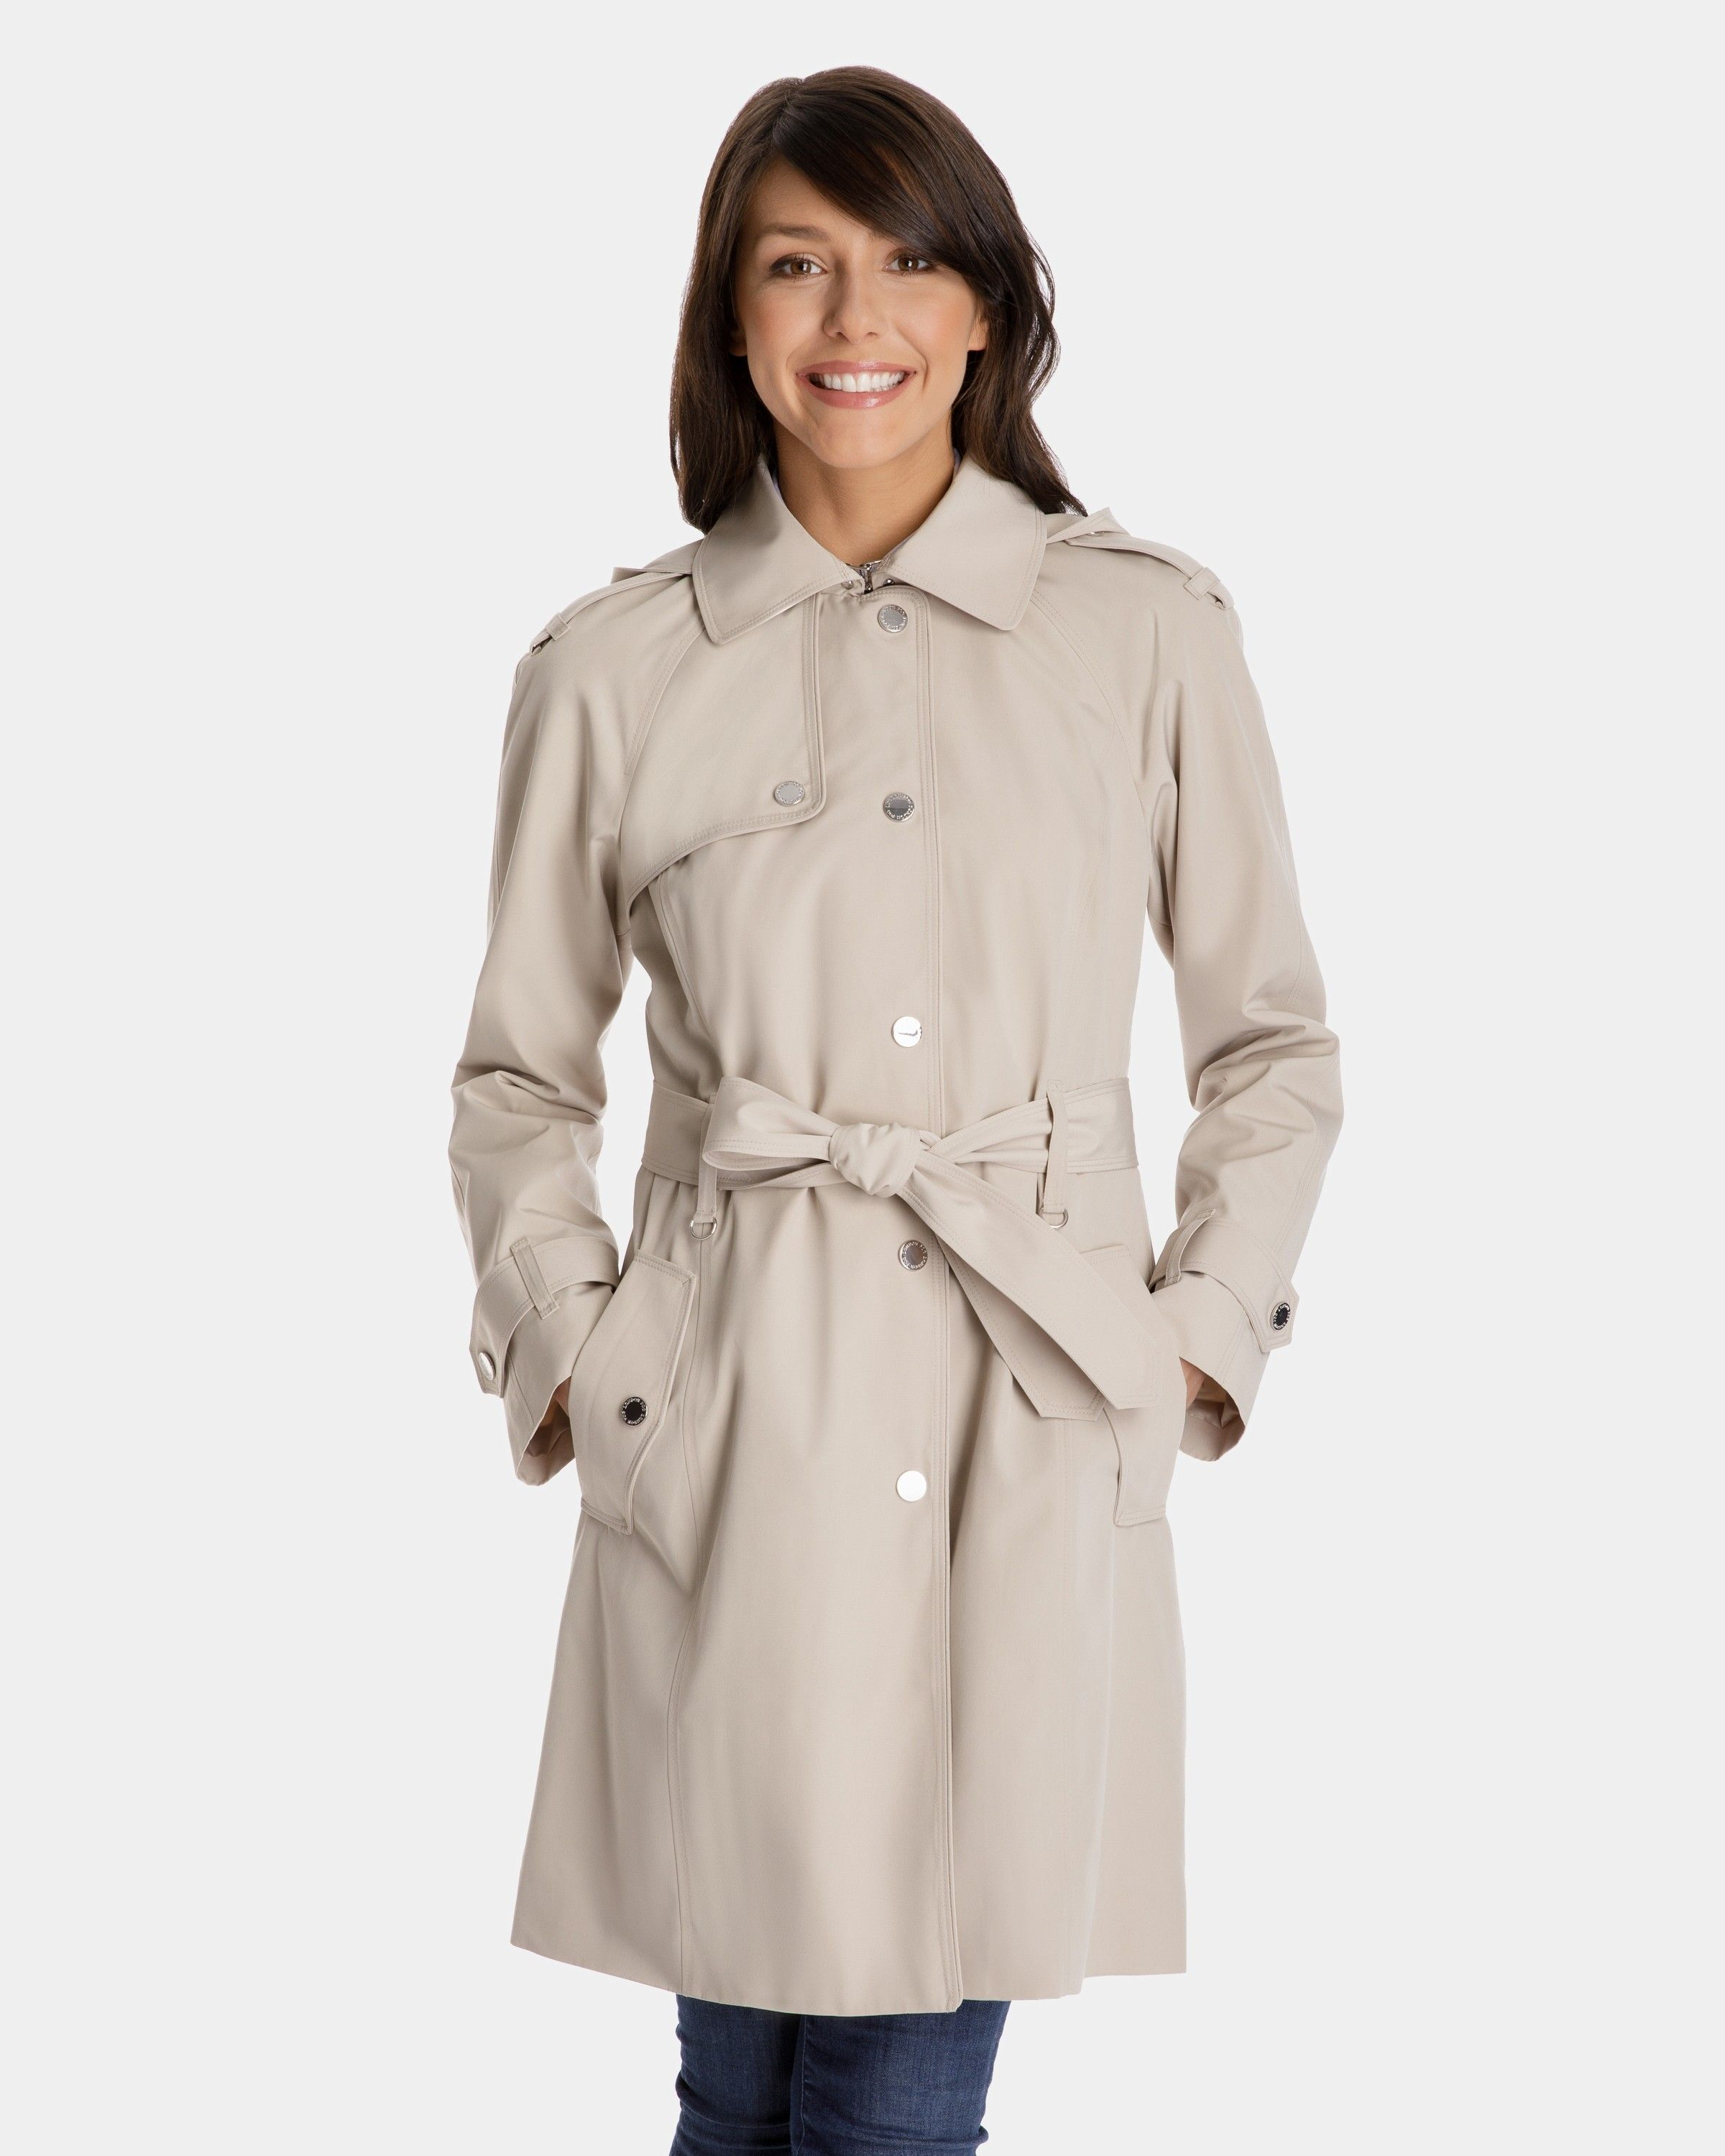 4377a3afcef Megan Single-Breasted Trench Coat with Gun Flap and Removable Hood - Trench  Coats for Women - Coats for Women - Women